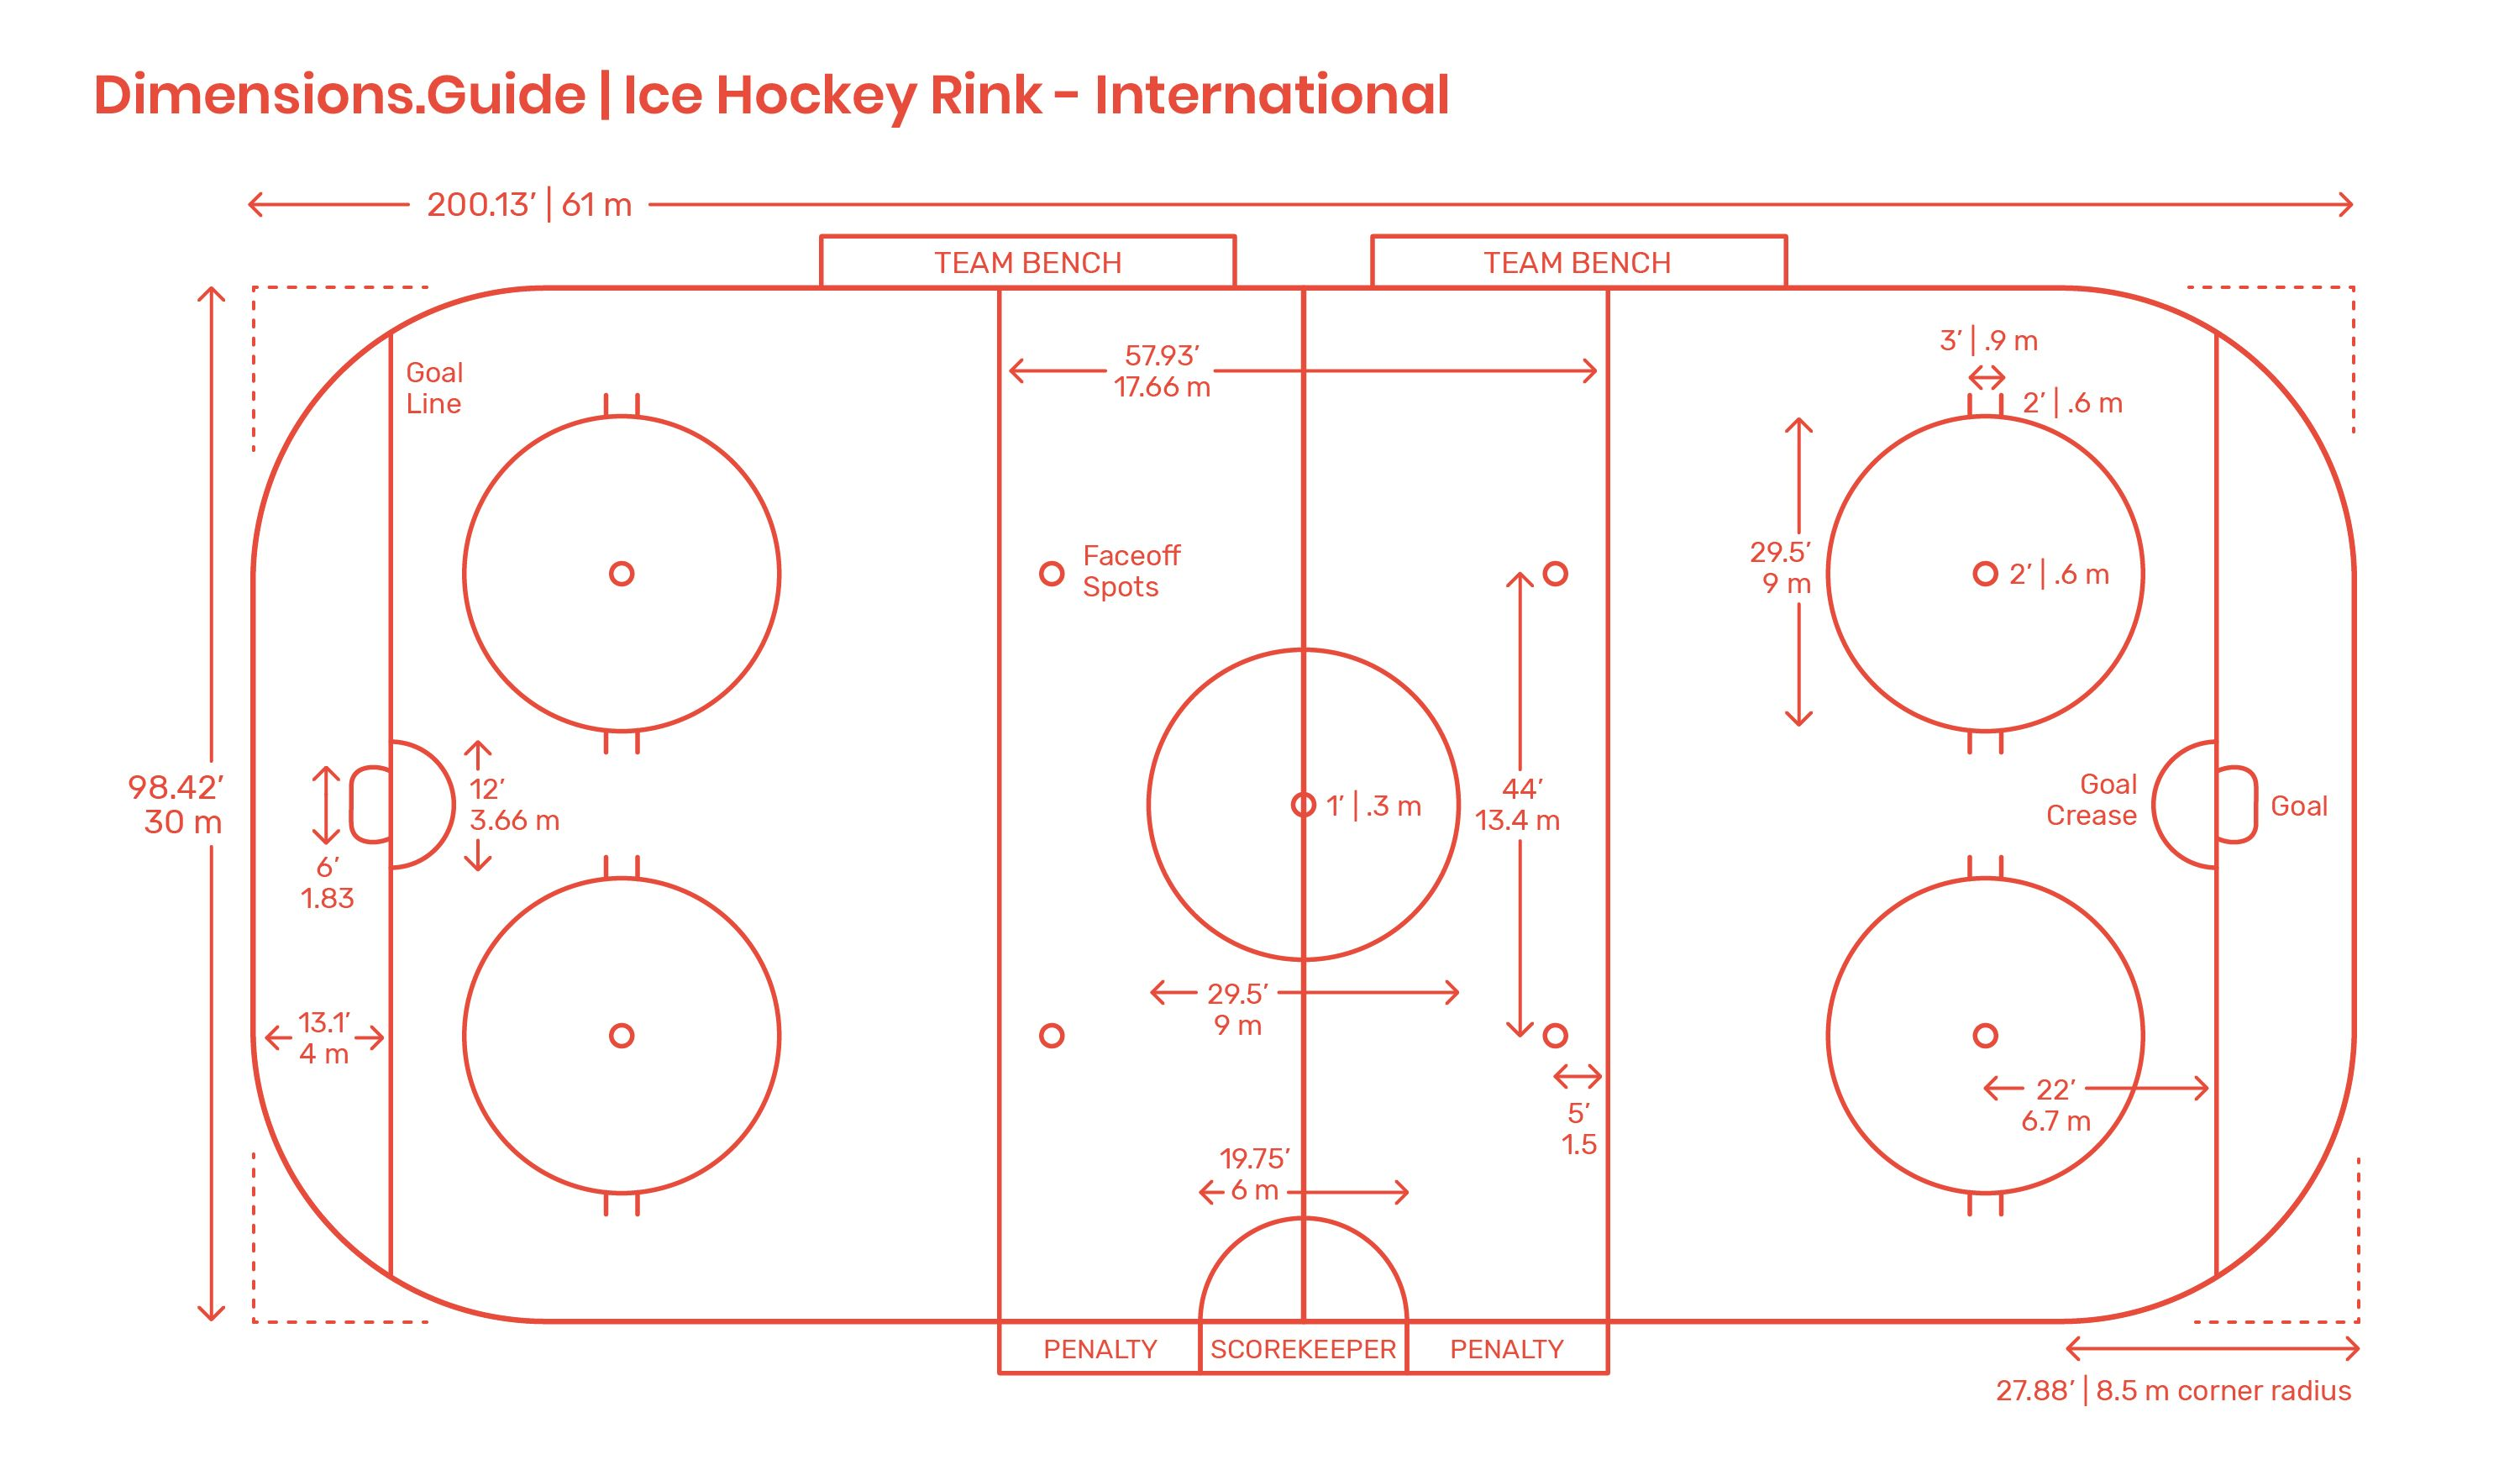 Ice Hockey Rink International Ice Hockey Rink Ice Hockey Hockey